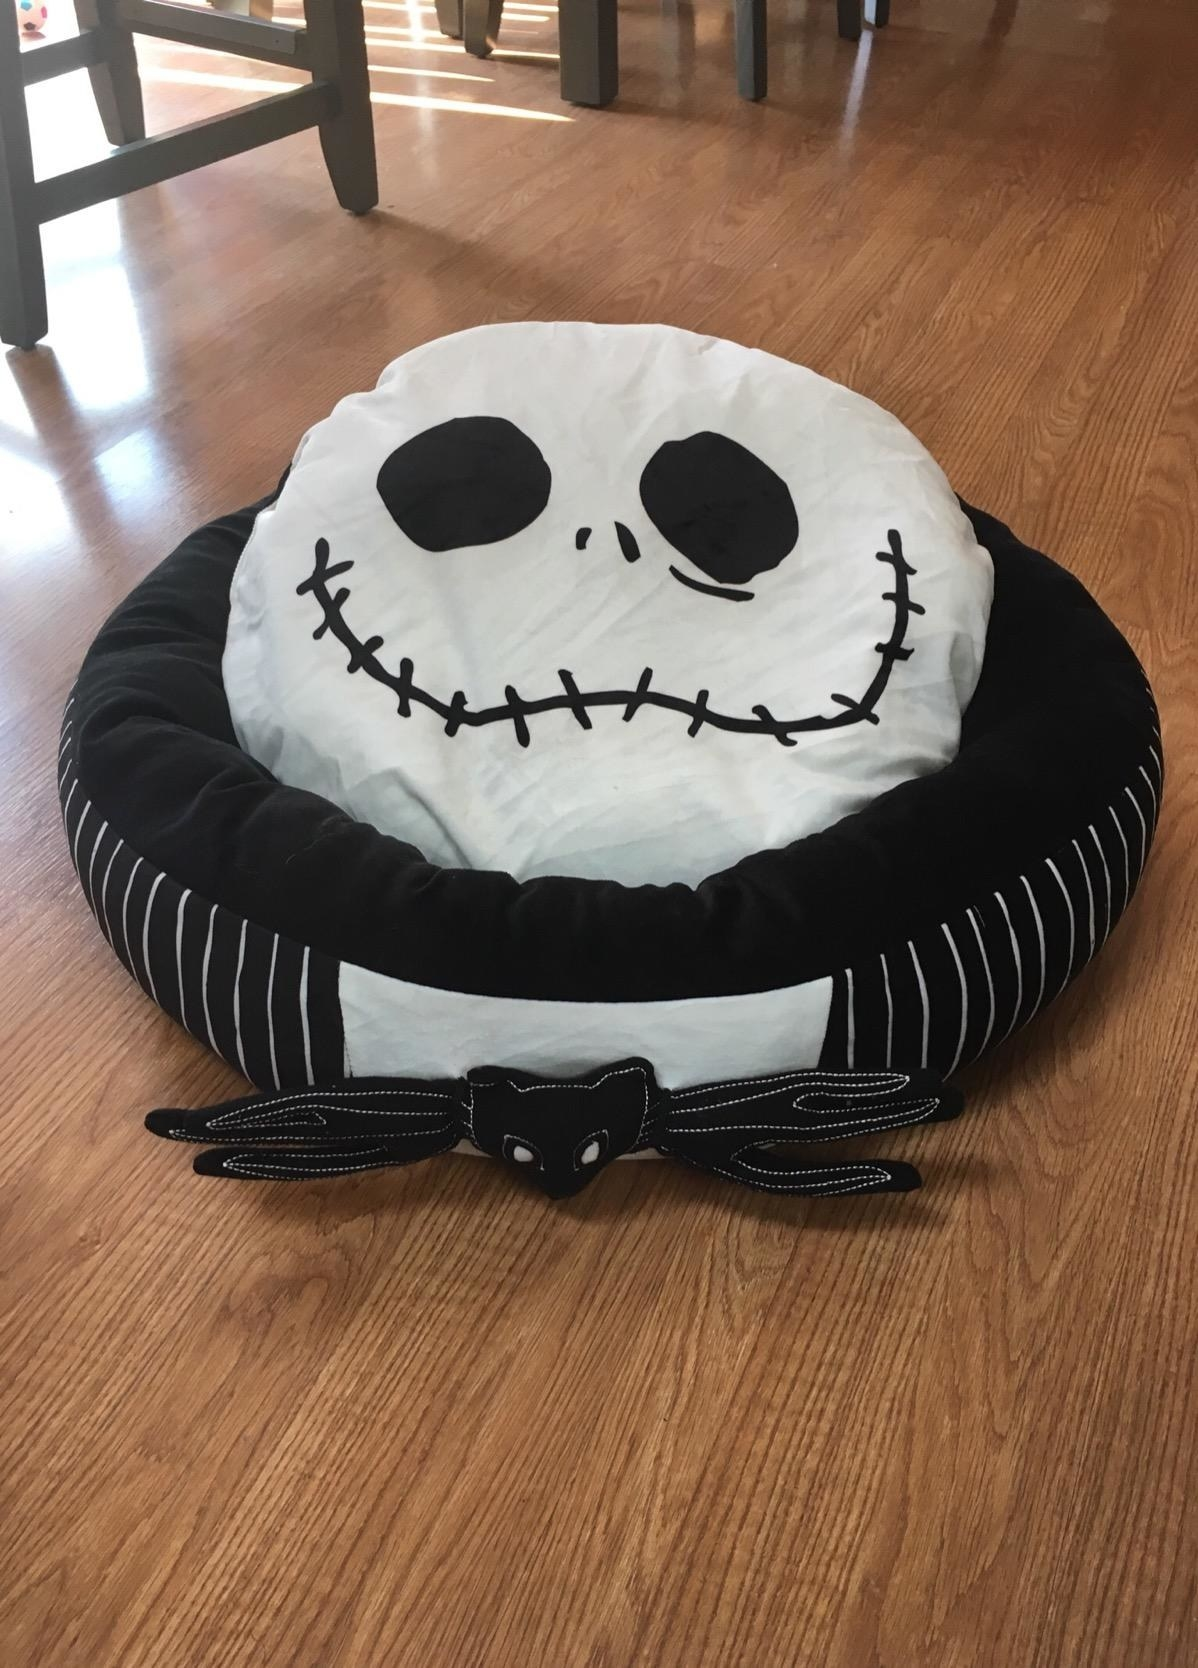 The Jack Skellington-themed bed